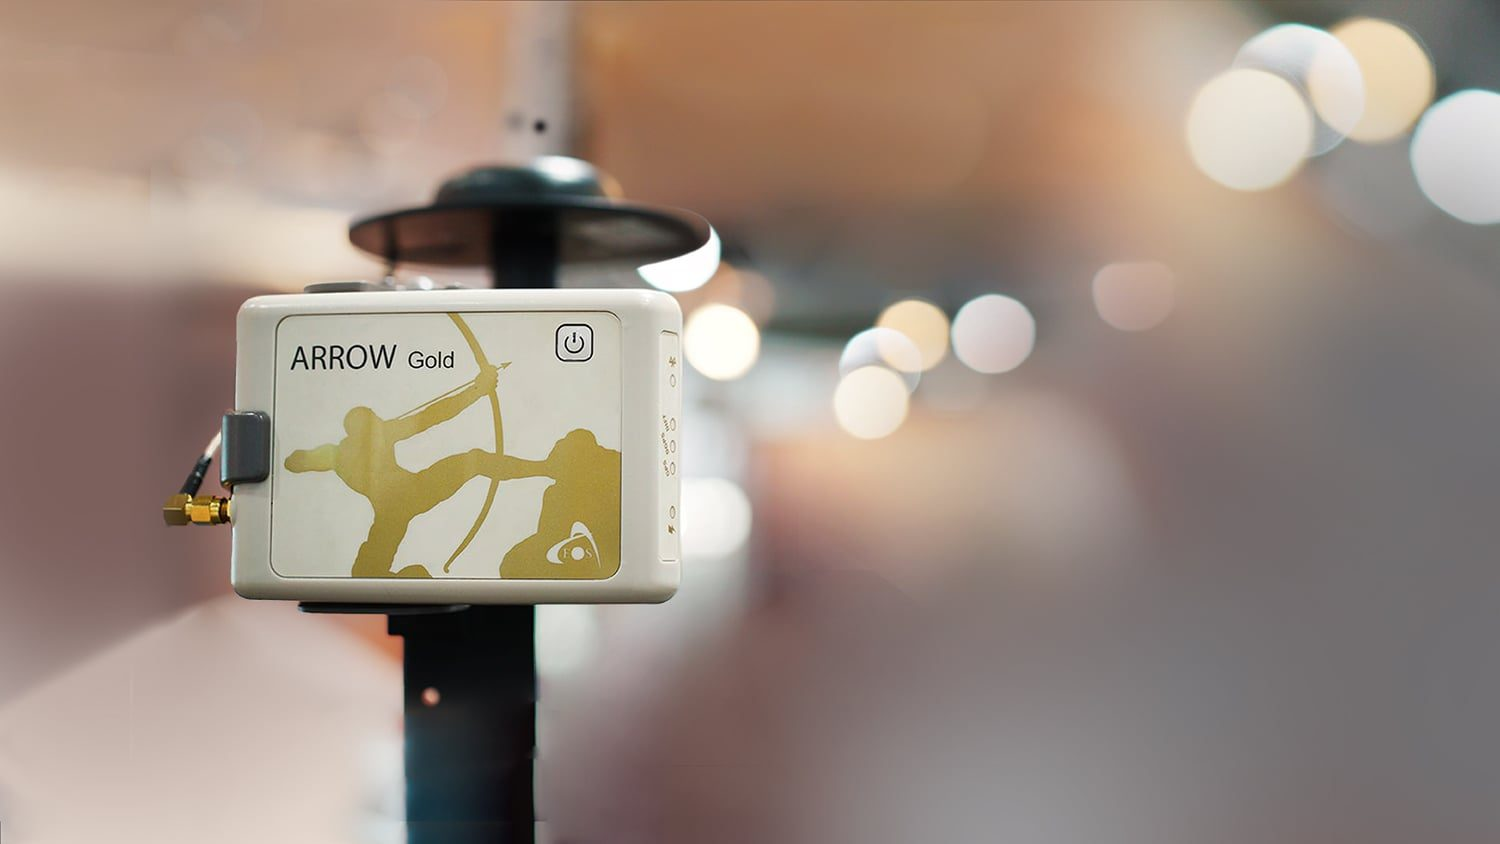 About Eos Positioning Systems GIS GNSS GPS Arrow